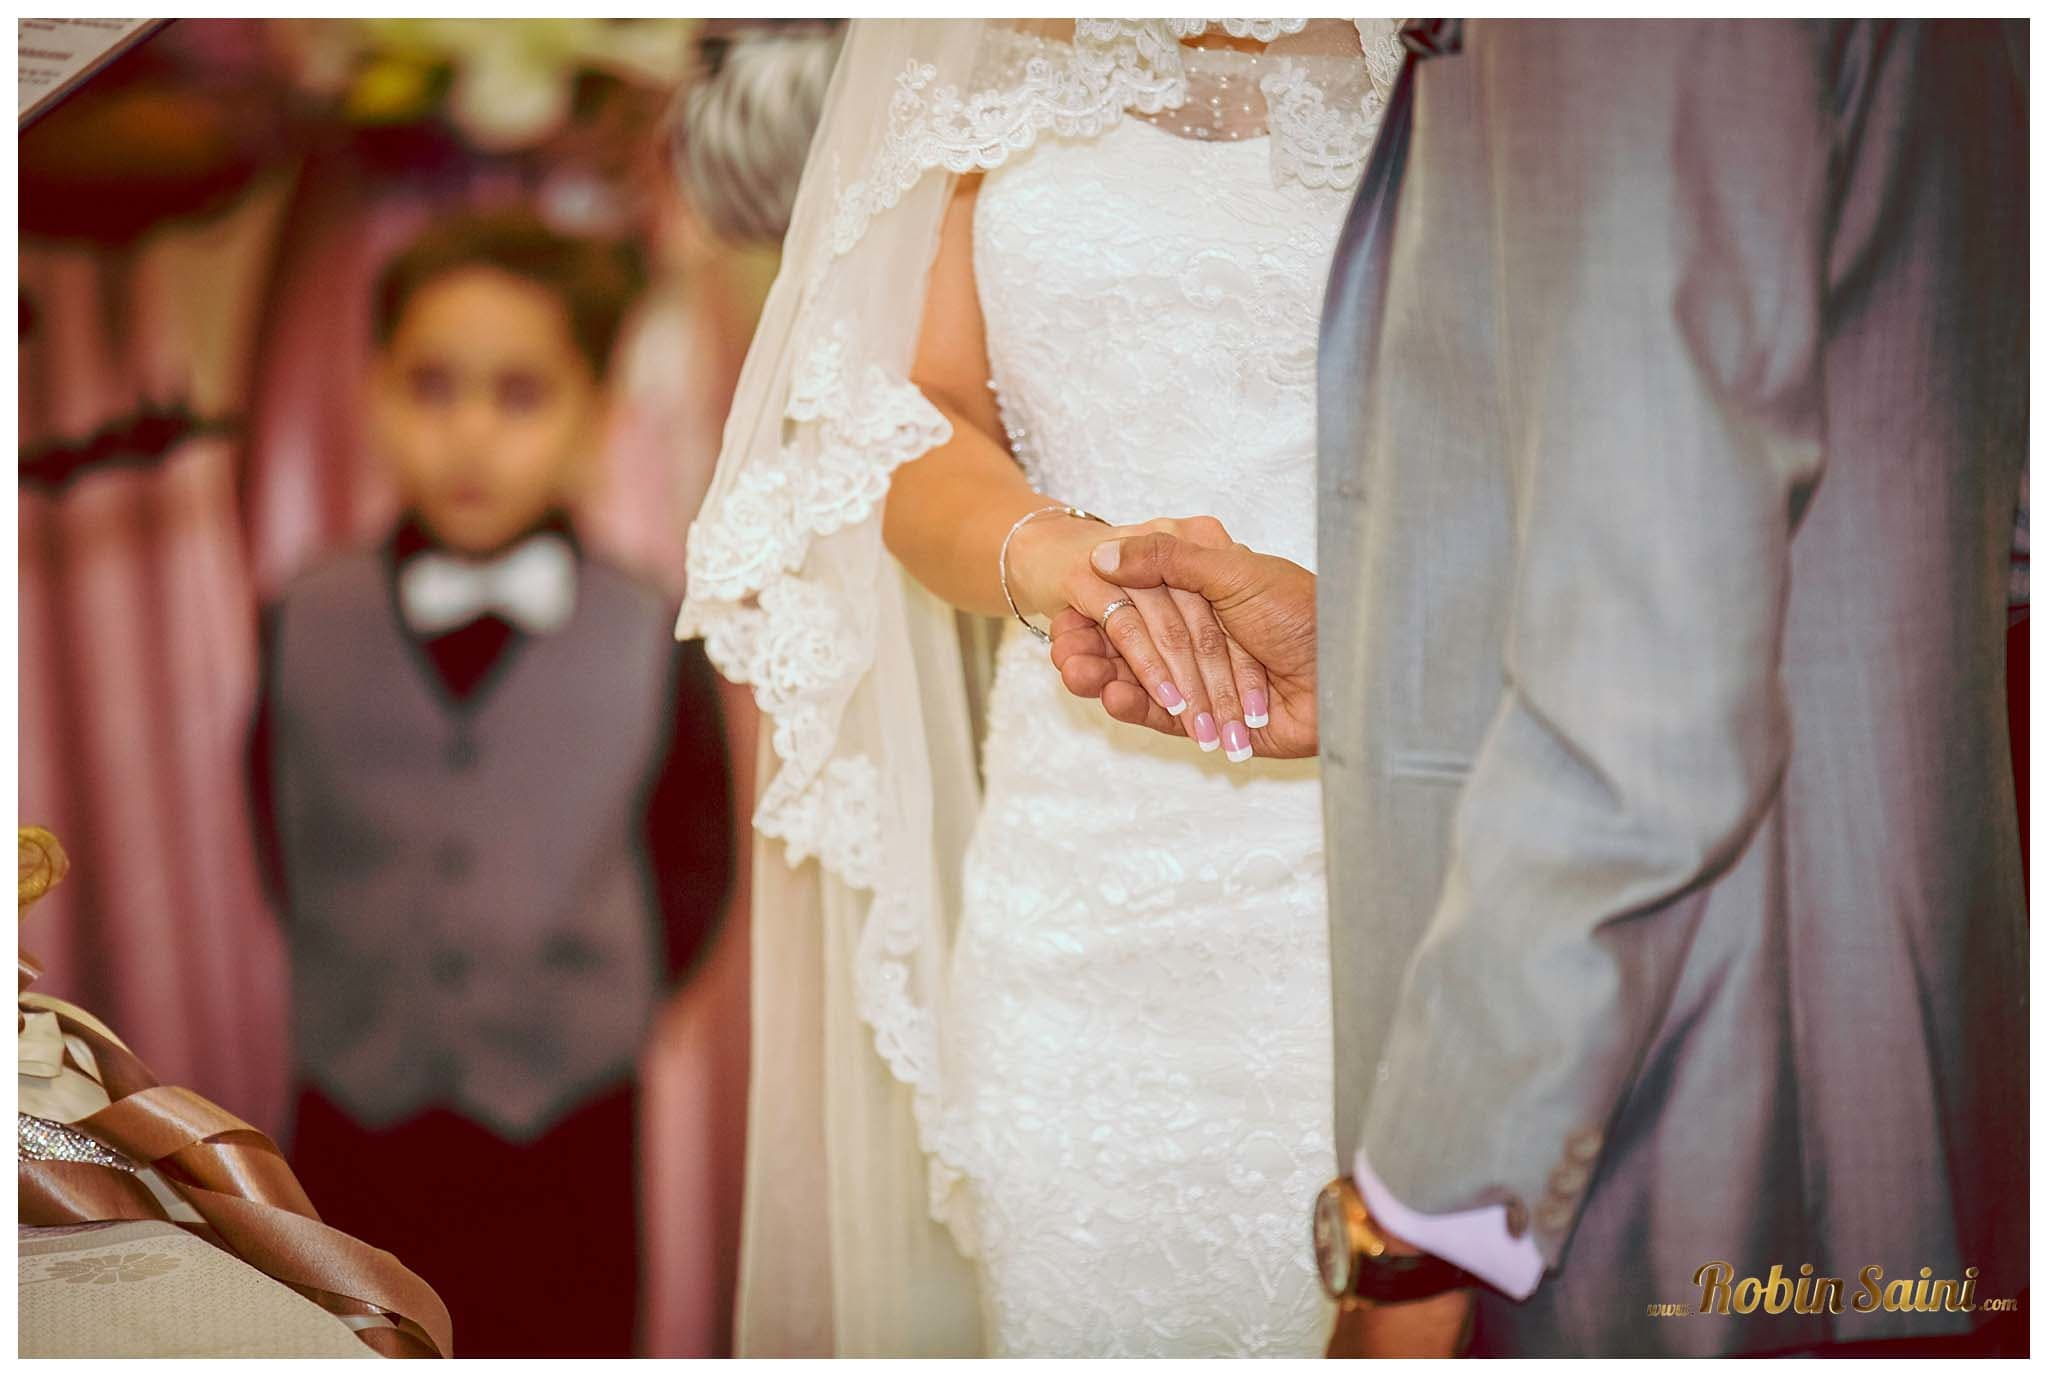 bride and groom holding hands together:robin saini photography